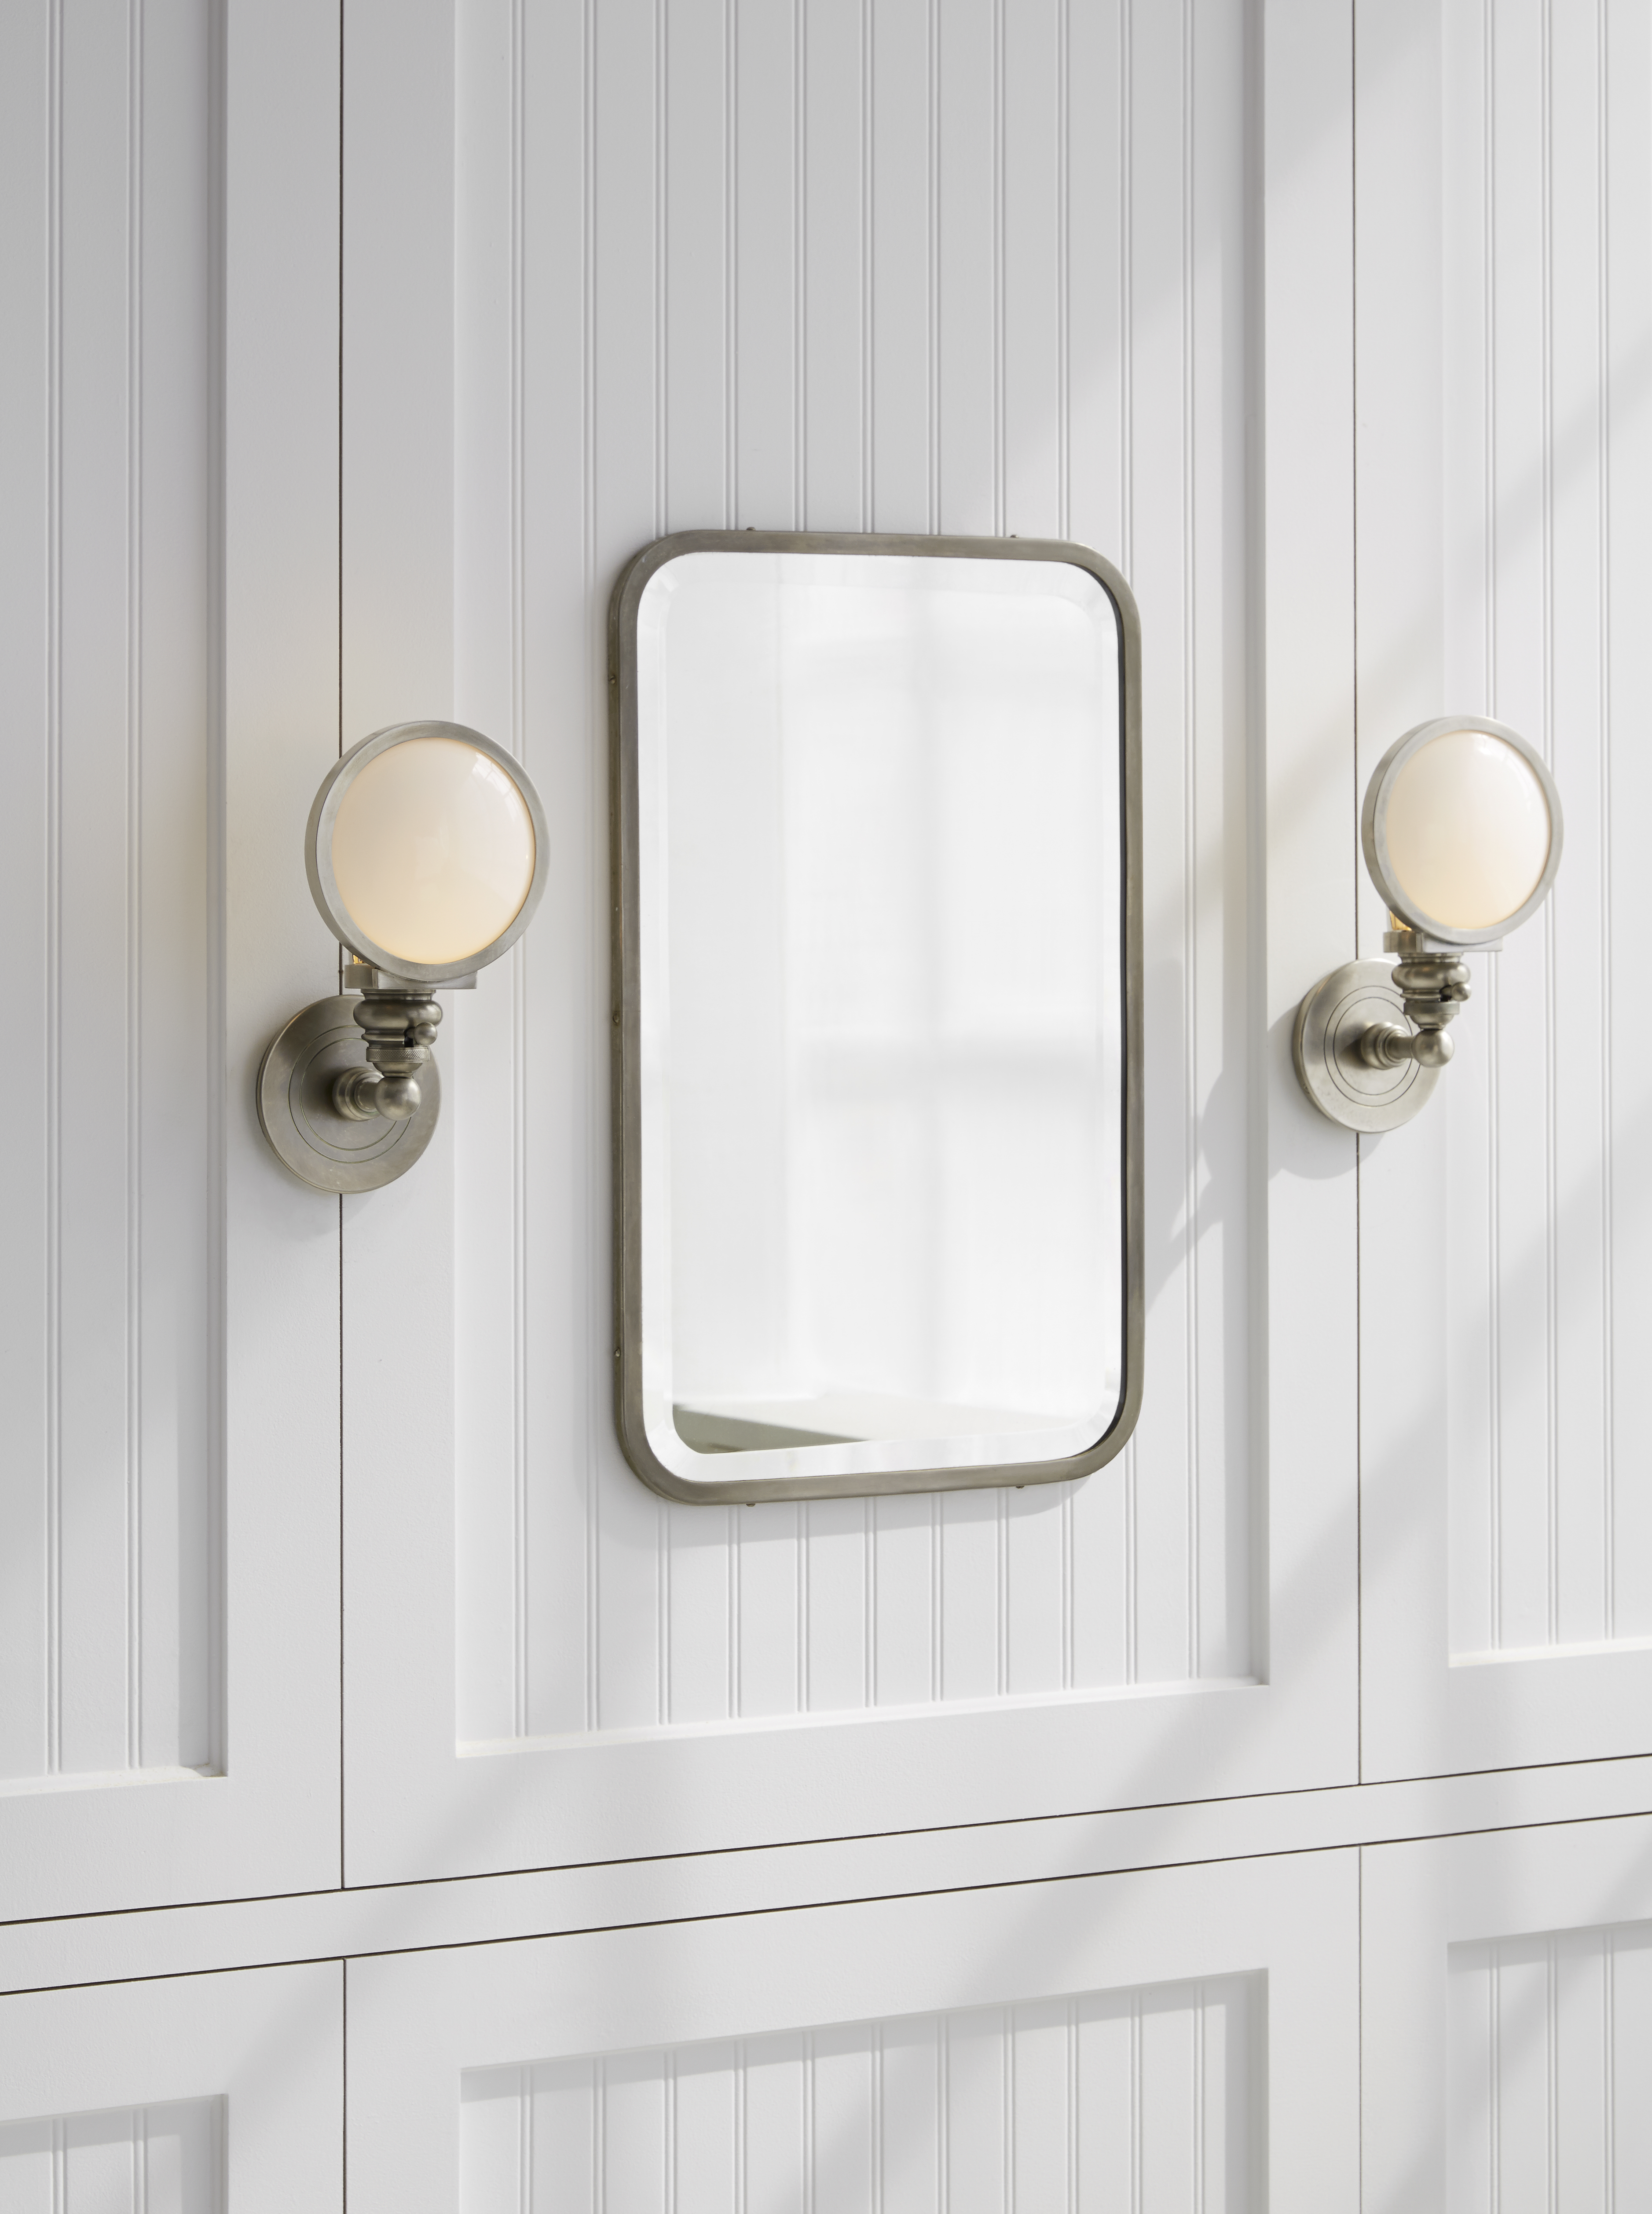 sconce visual pair reed comfort antique mirrors of preservation bathroom tudor s arm excellent cand wall sconces tube c double and doubletwist choosing with